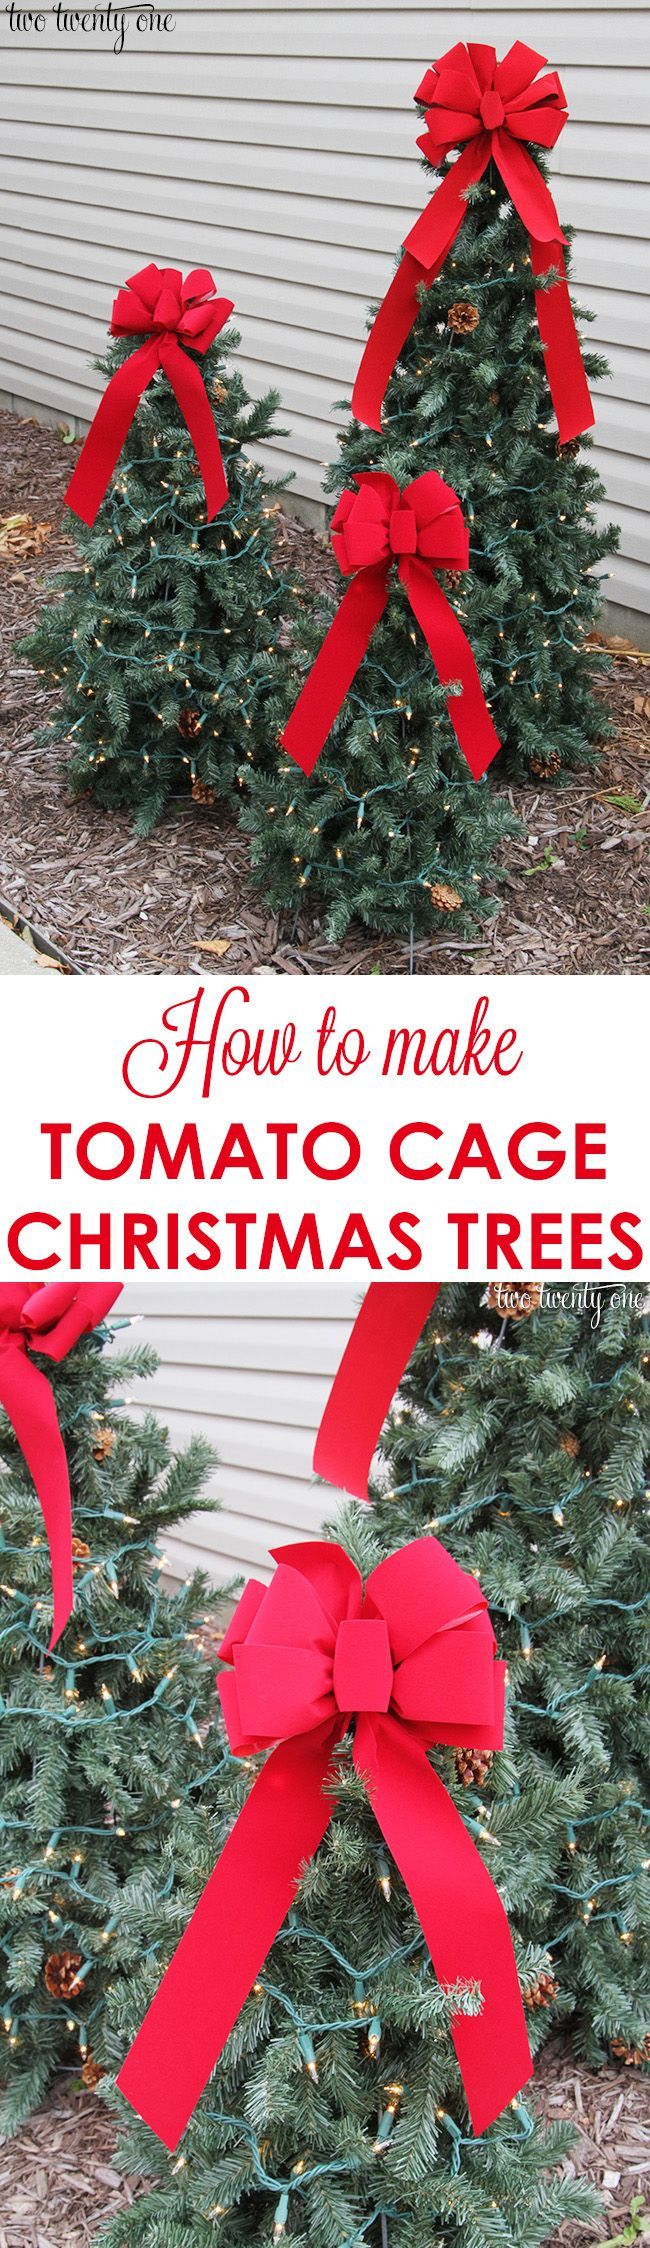 How To Make Tomato Cage Christmas Trees! Plus, How To Make Three Different  Sizes